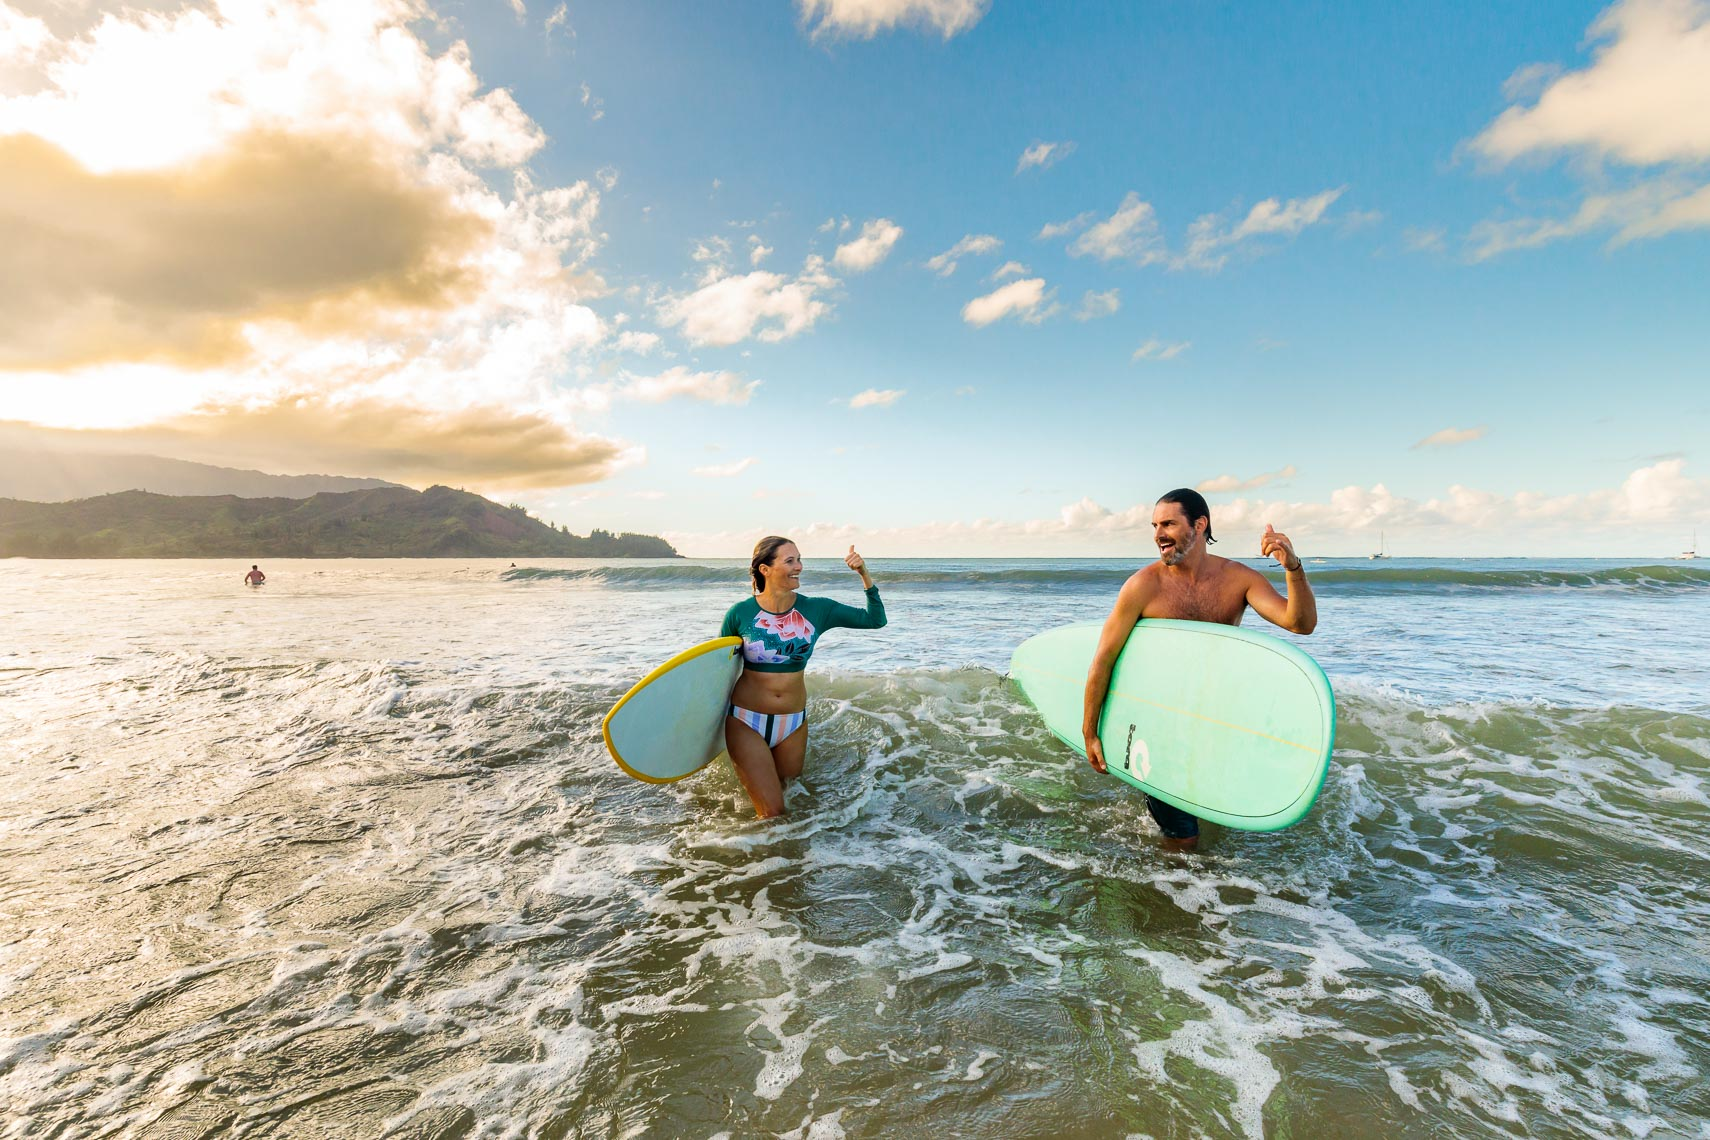 Norwegian Cruise Line Hawaii Shoot Couple Surf | Michael DeYoung